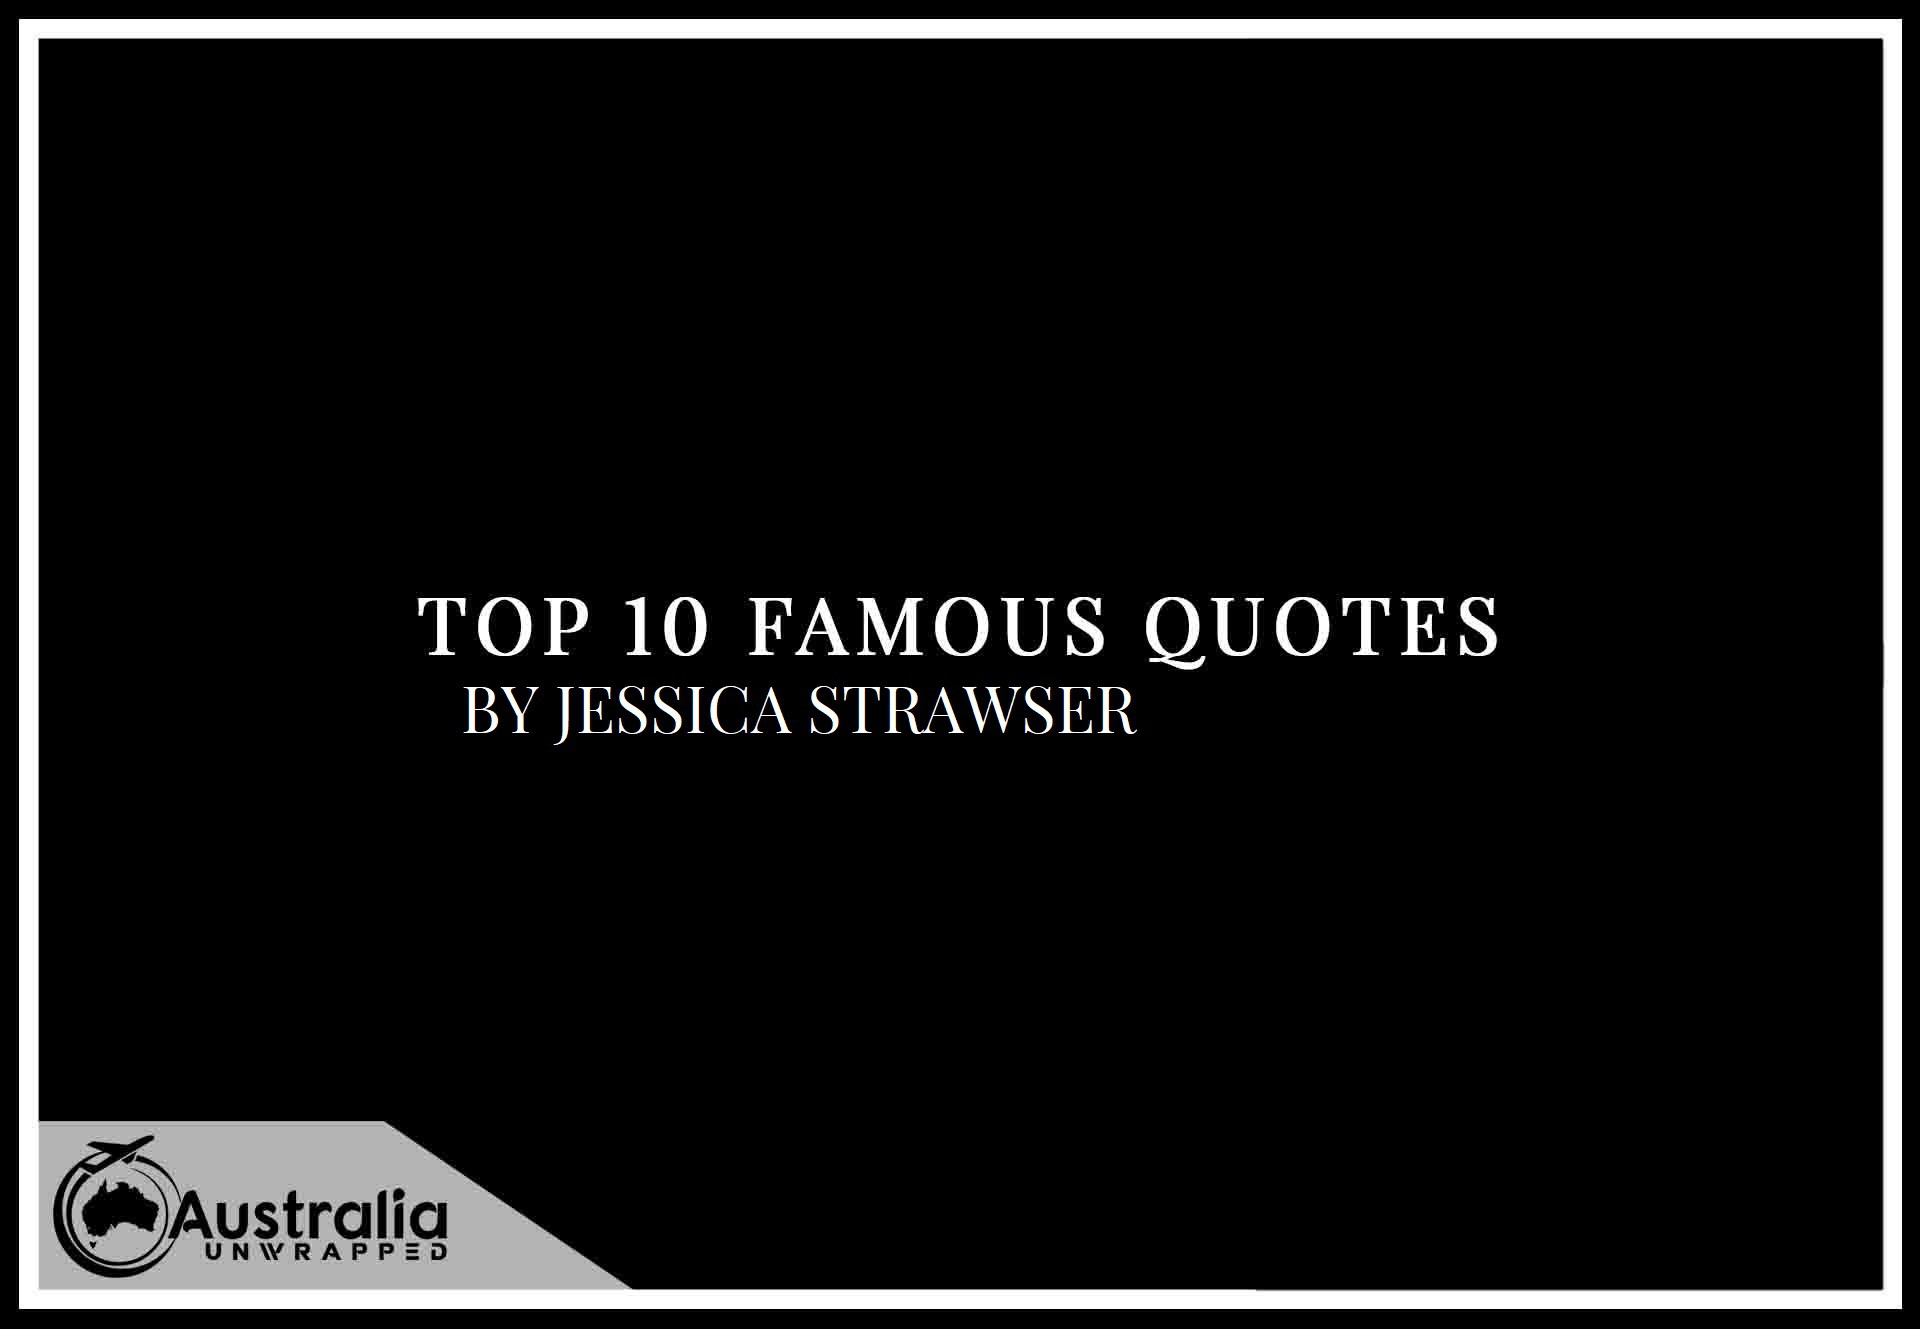 Top 10 Famous Quotes by Author Jessica Strawser